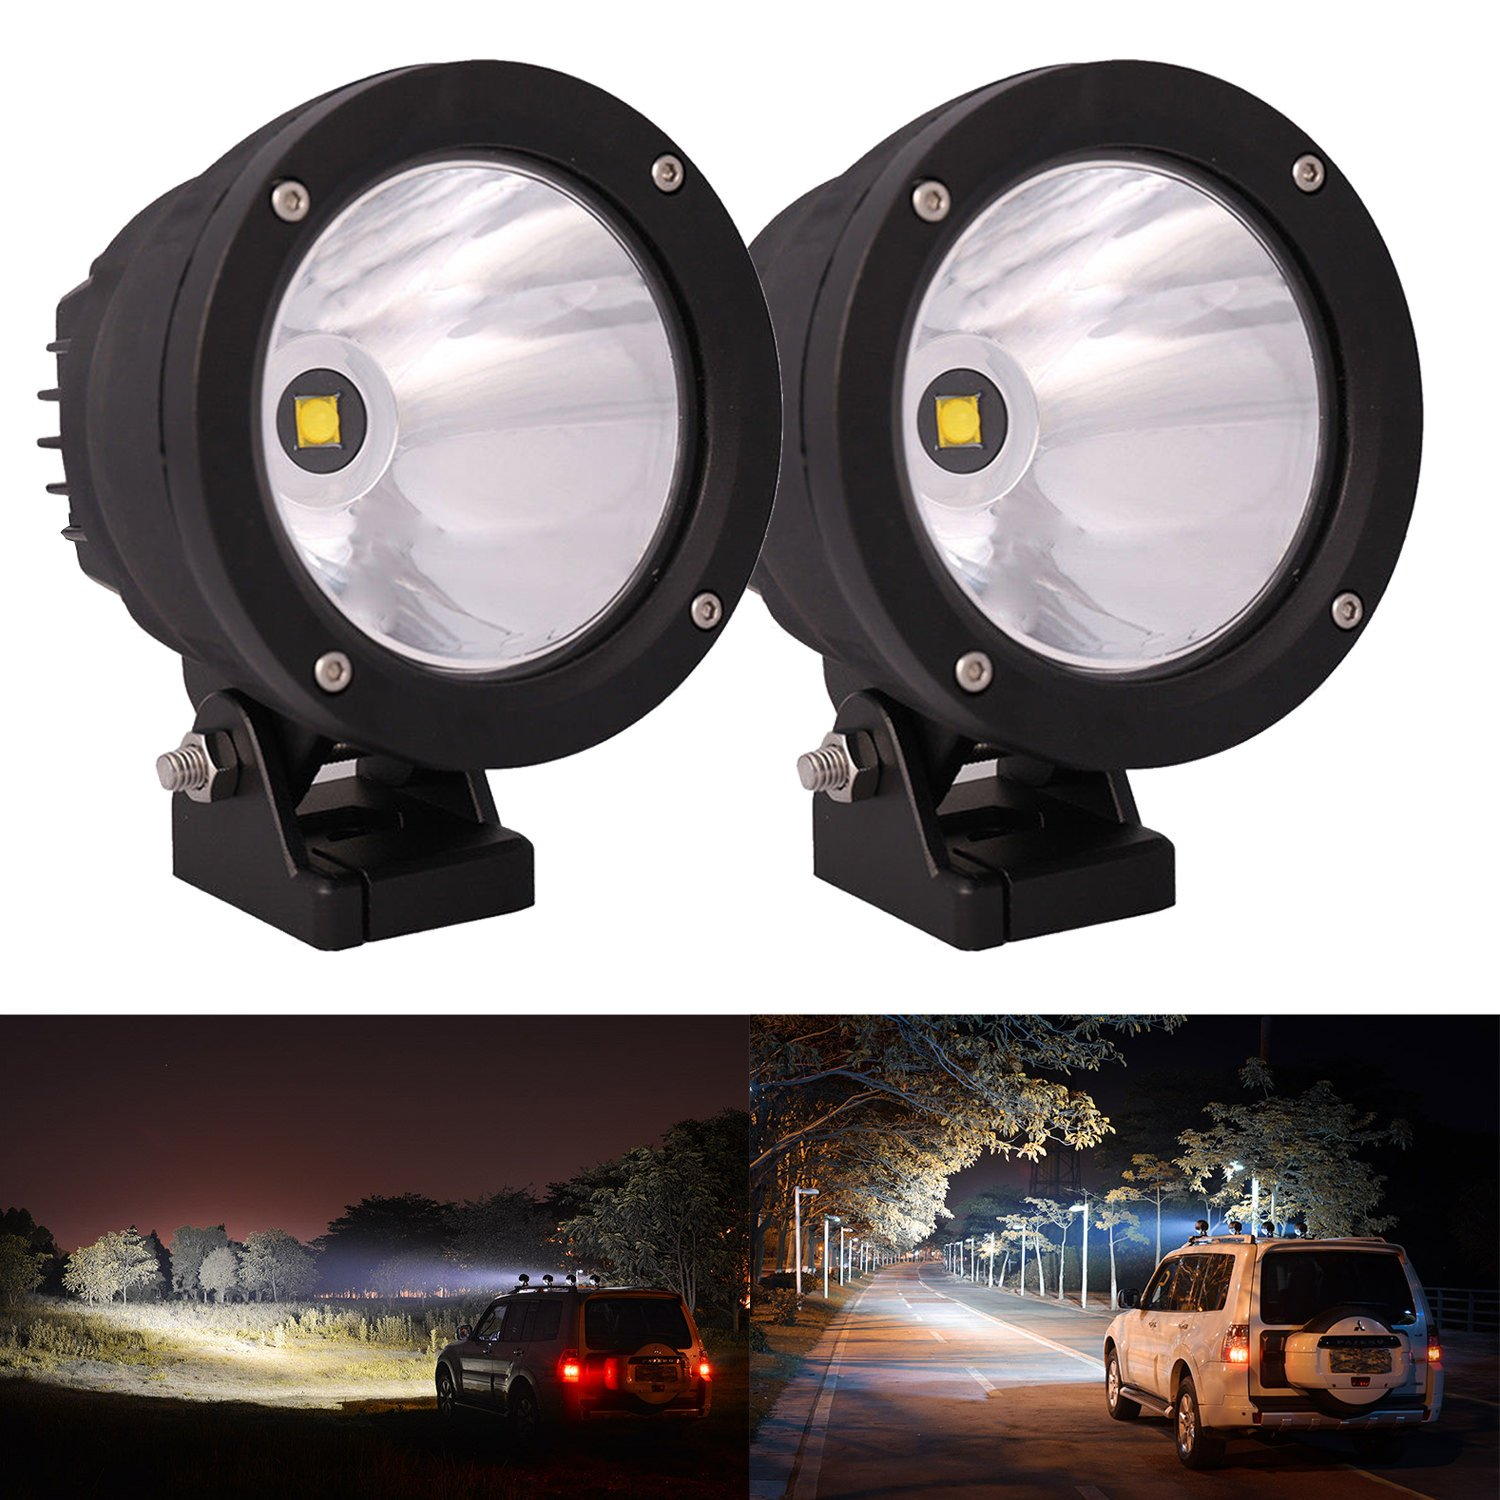 2pcs 25w 4 Inch 5 2500lm Led Cannon Light Round Spot Details About Flood Work Driving Wiring Button On Off Spotlight Lamp Cree Narrow Jeep Polaris Suv 4wd Road Truck Atv Utv